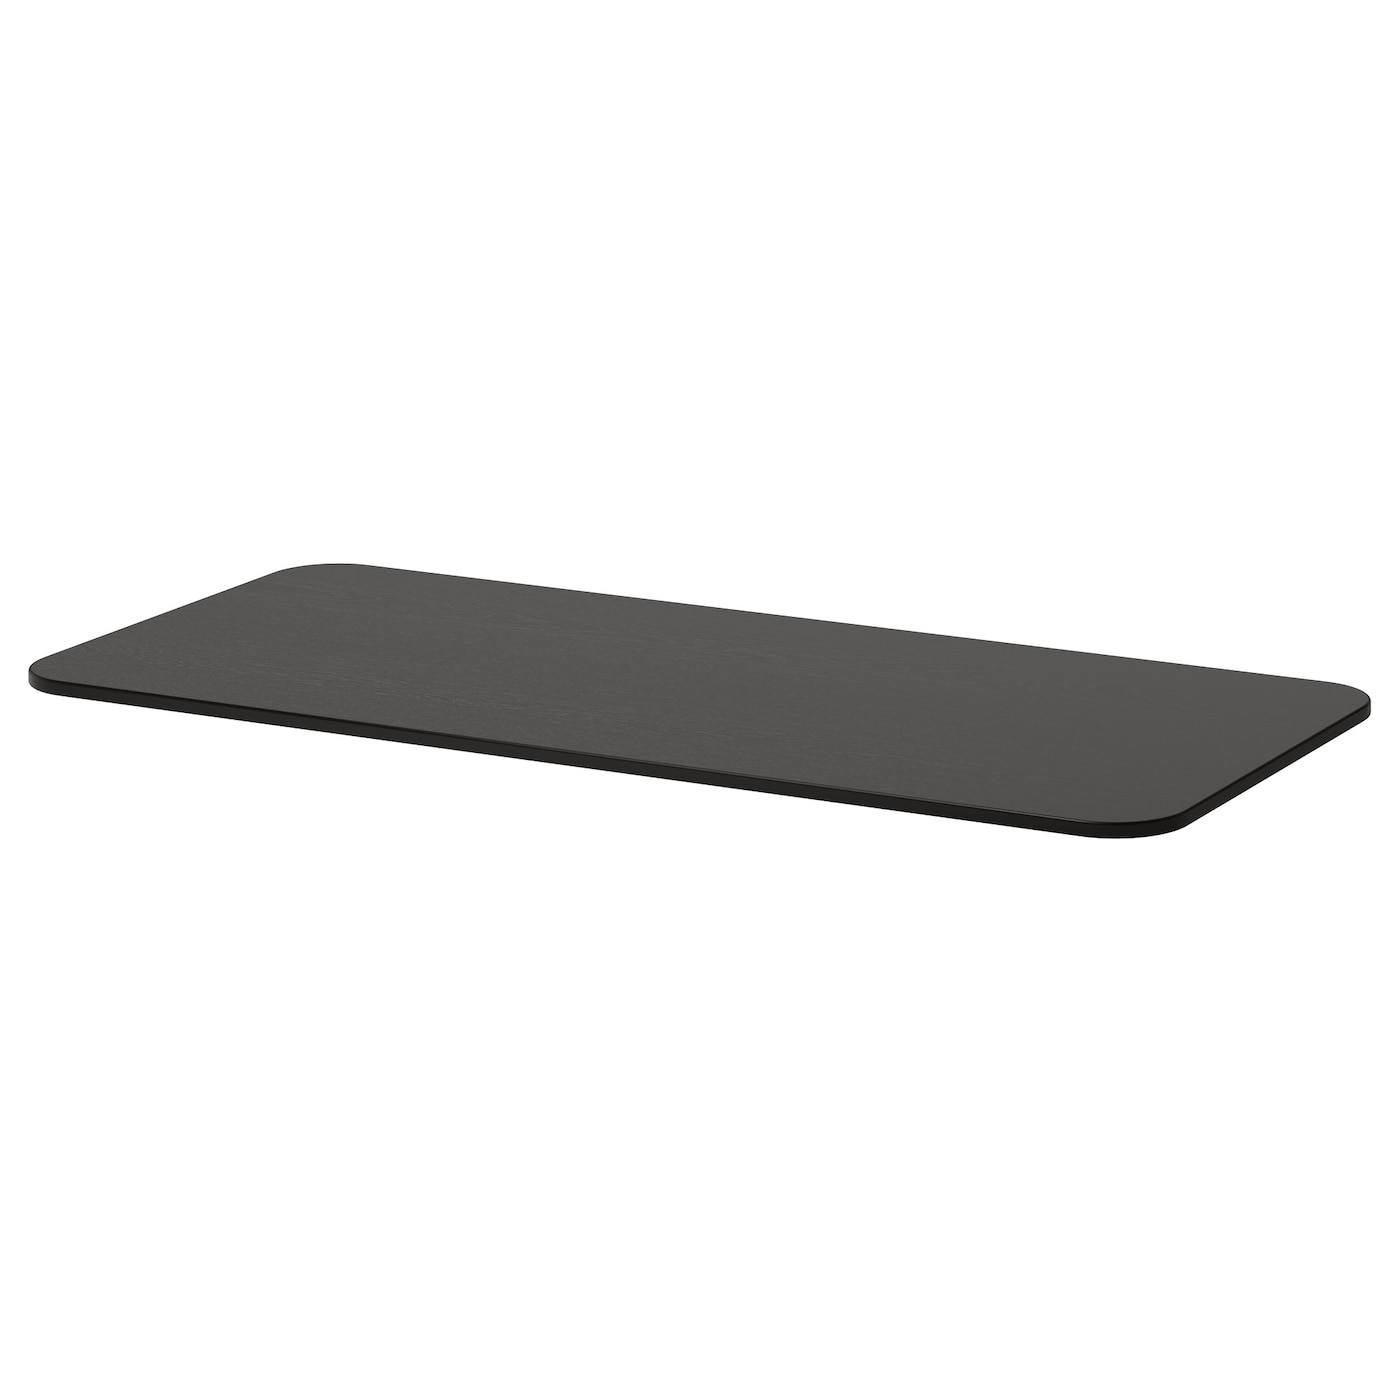 bekant table top black brown 140 x 60 cm ikea. Black Bedroom Furniture Sets. Home Design Ideas